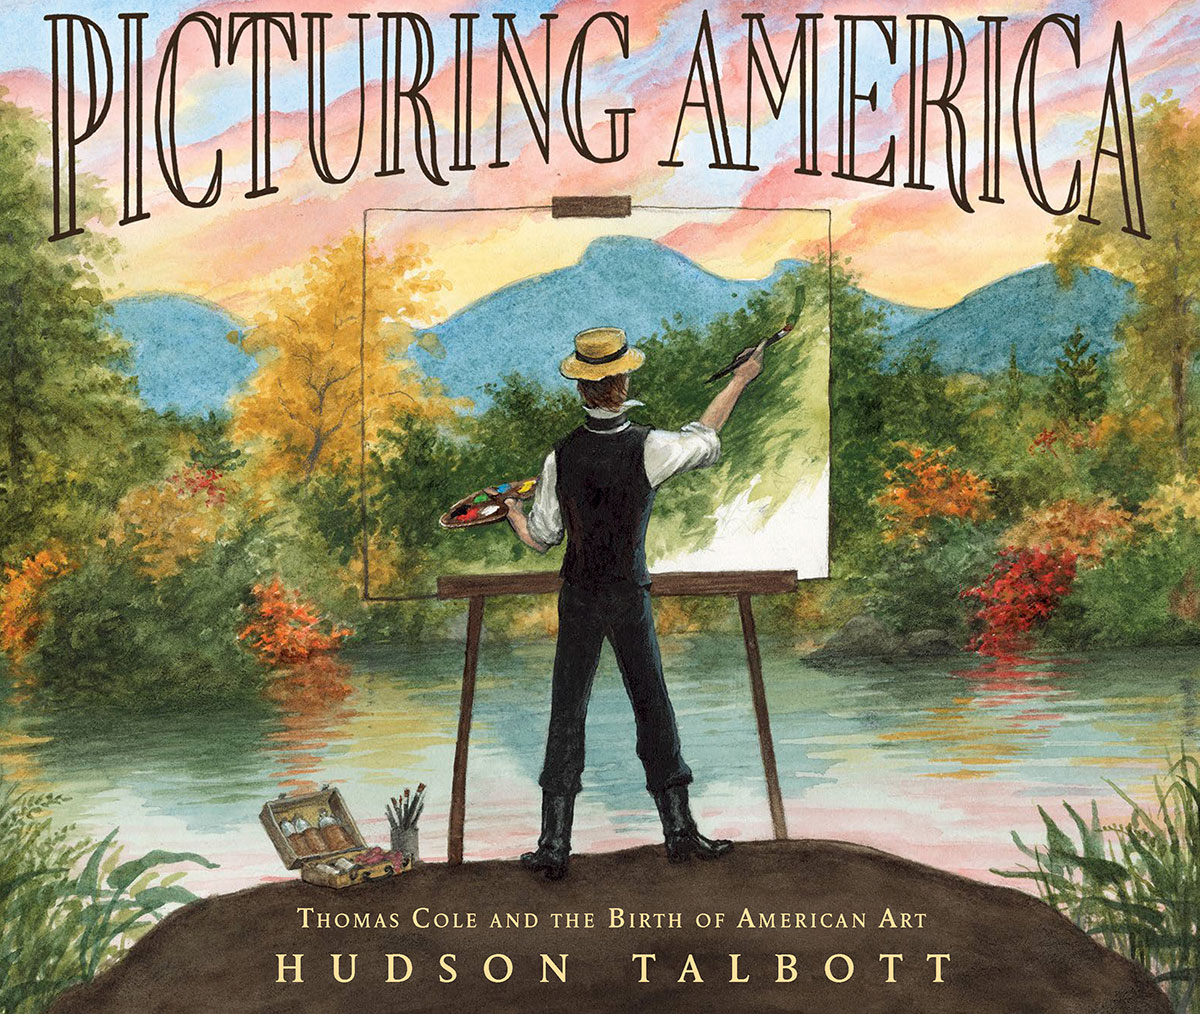 PICTURING AMERICA: Thomas Cole's Story